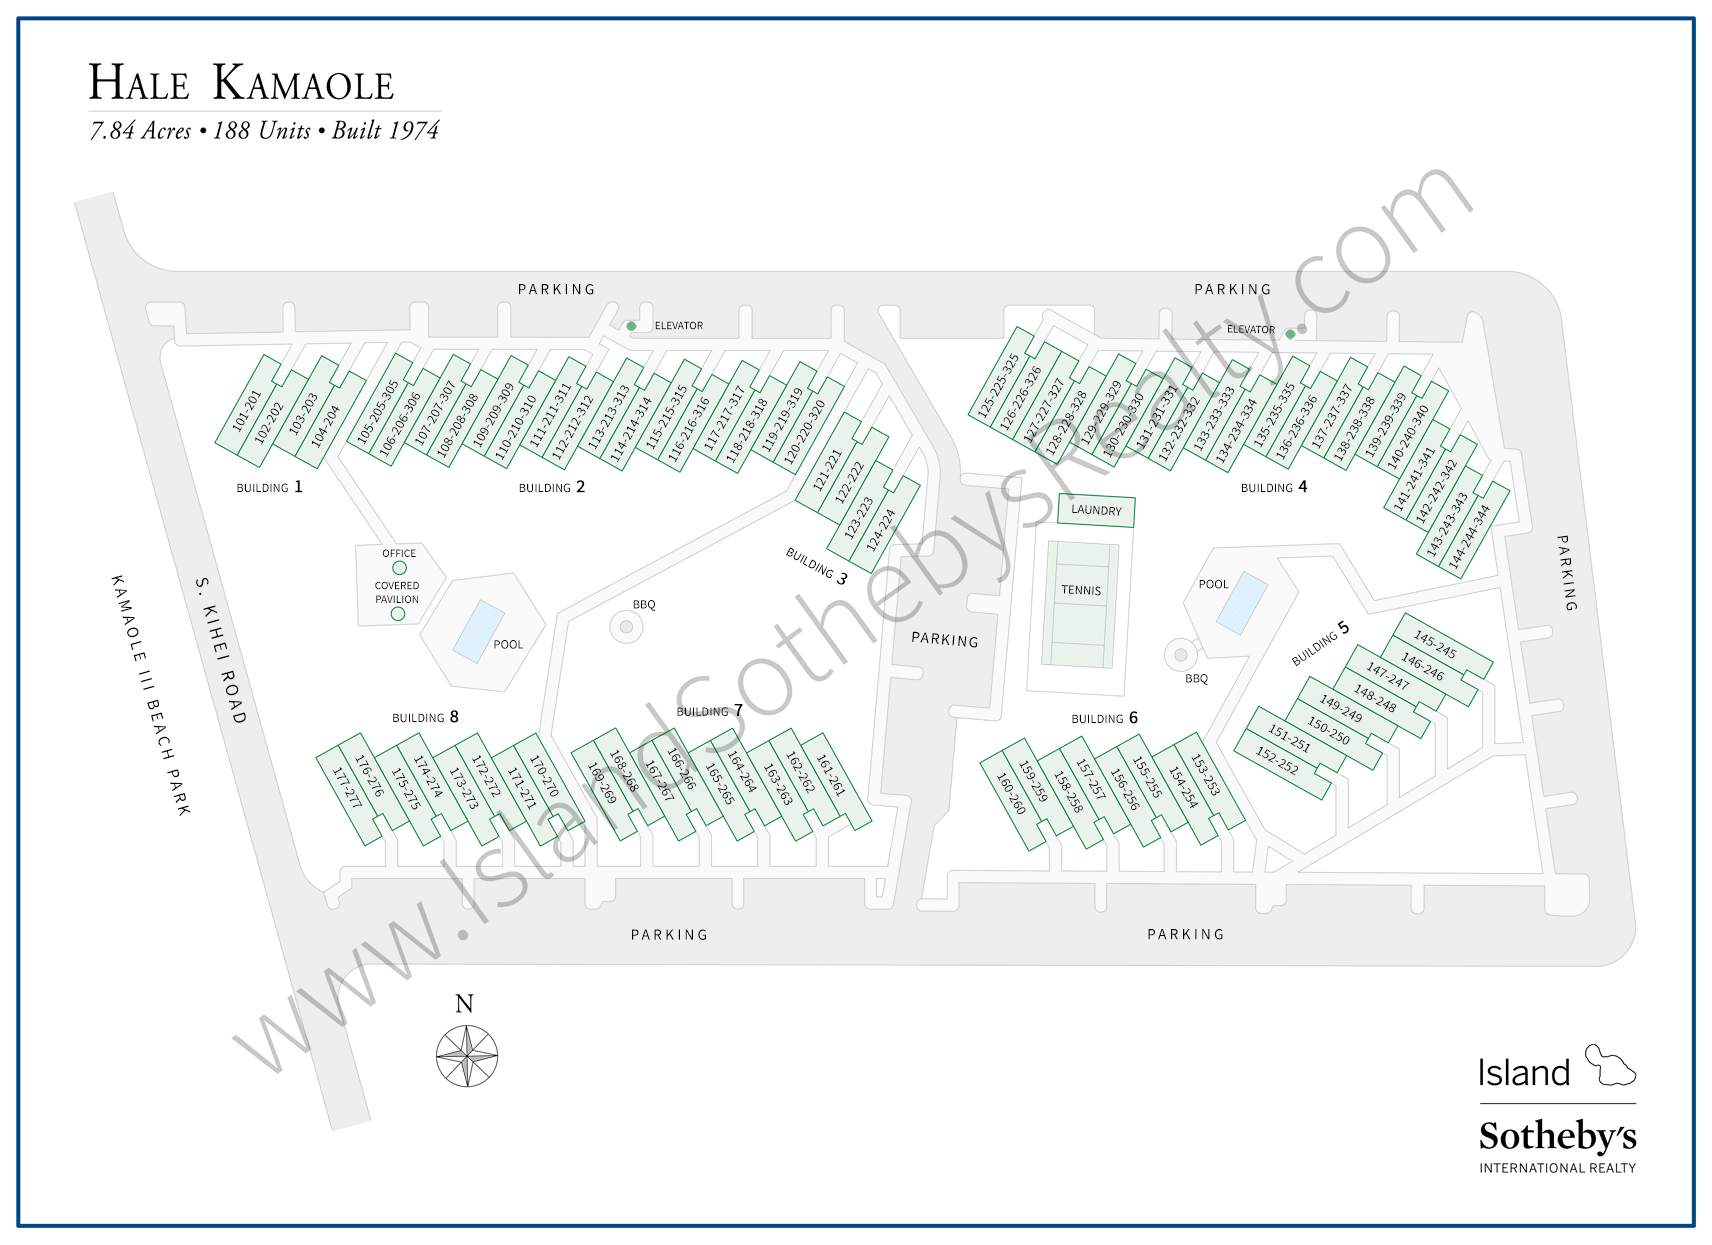 Map of Hale Kamaole Maui